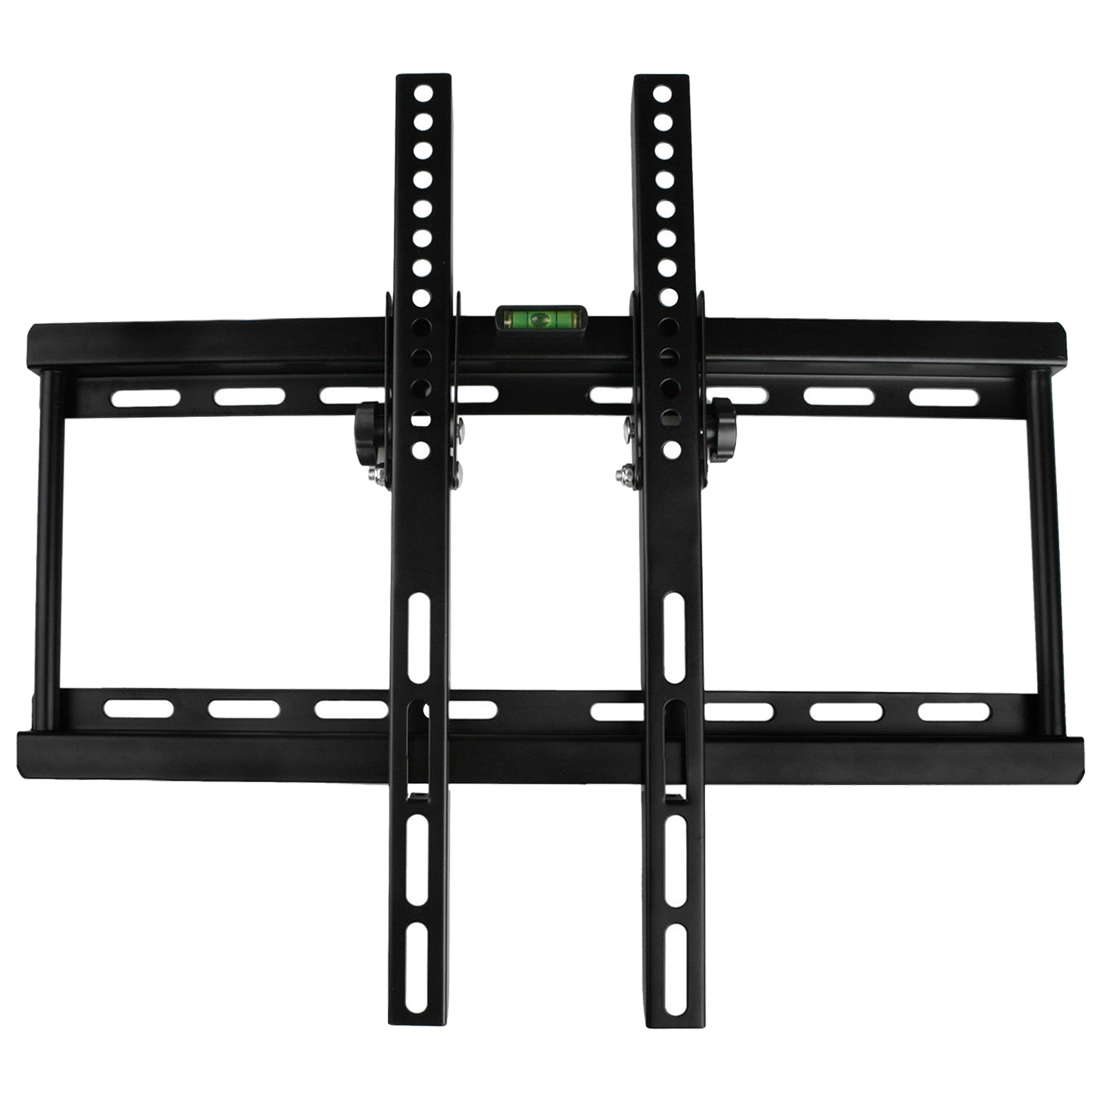 Bathroom Fixtures Cnim Hot Flat Slim Tv Wall Mount Bracket 23 28 30 32 40 42 48 50 55 Inch Led Lcd Plasma